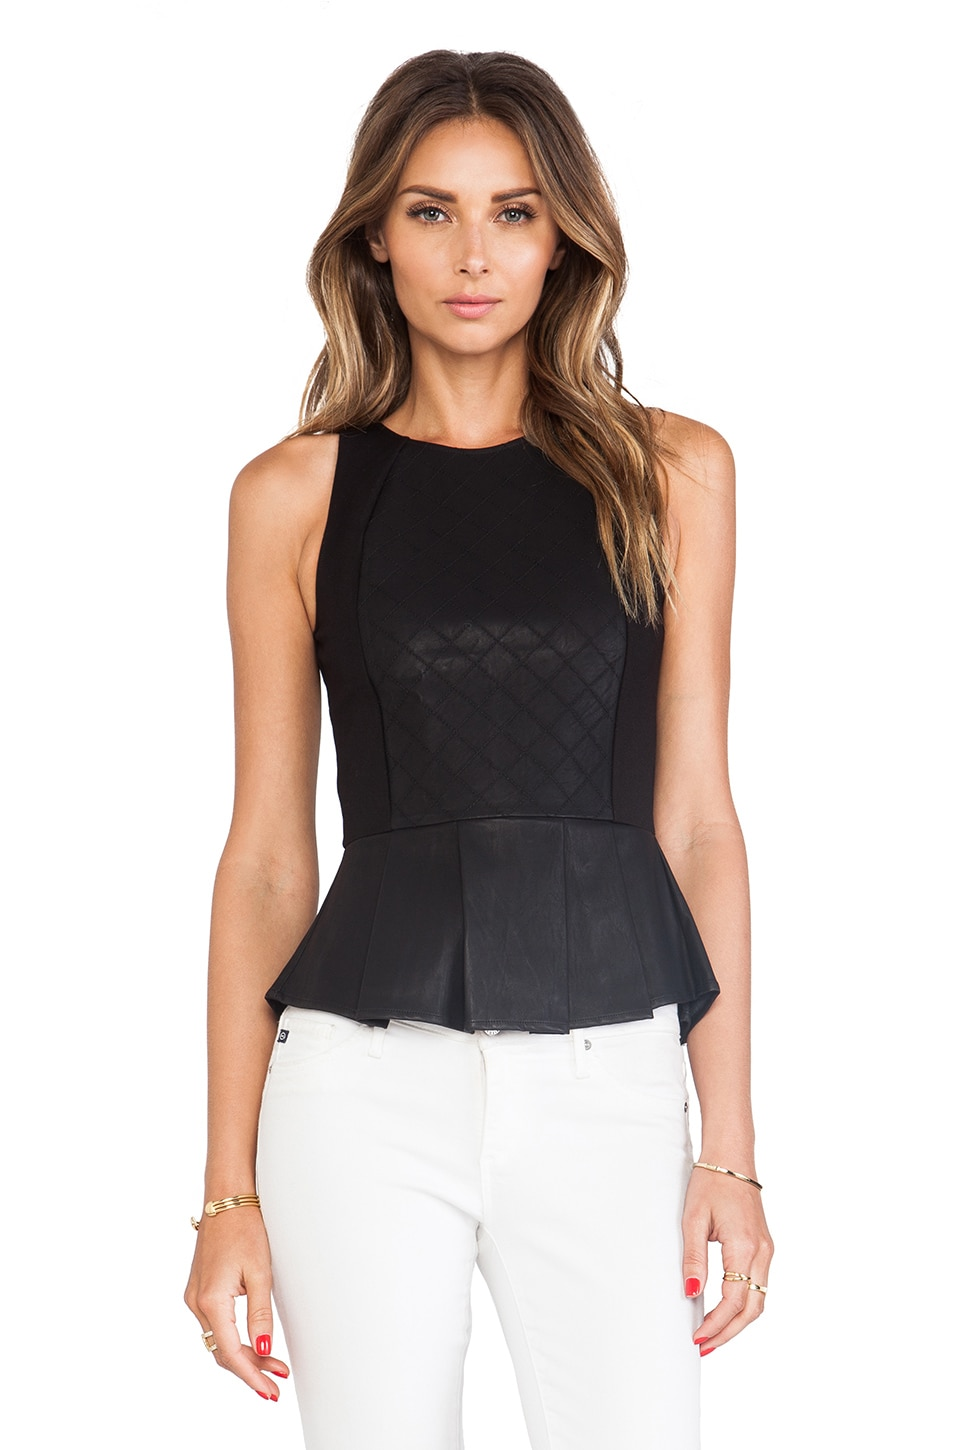 Dolce Vita Gafa Faux Leather Top in Black